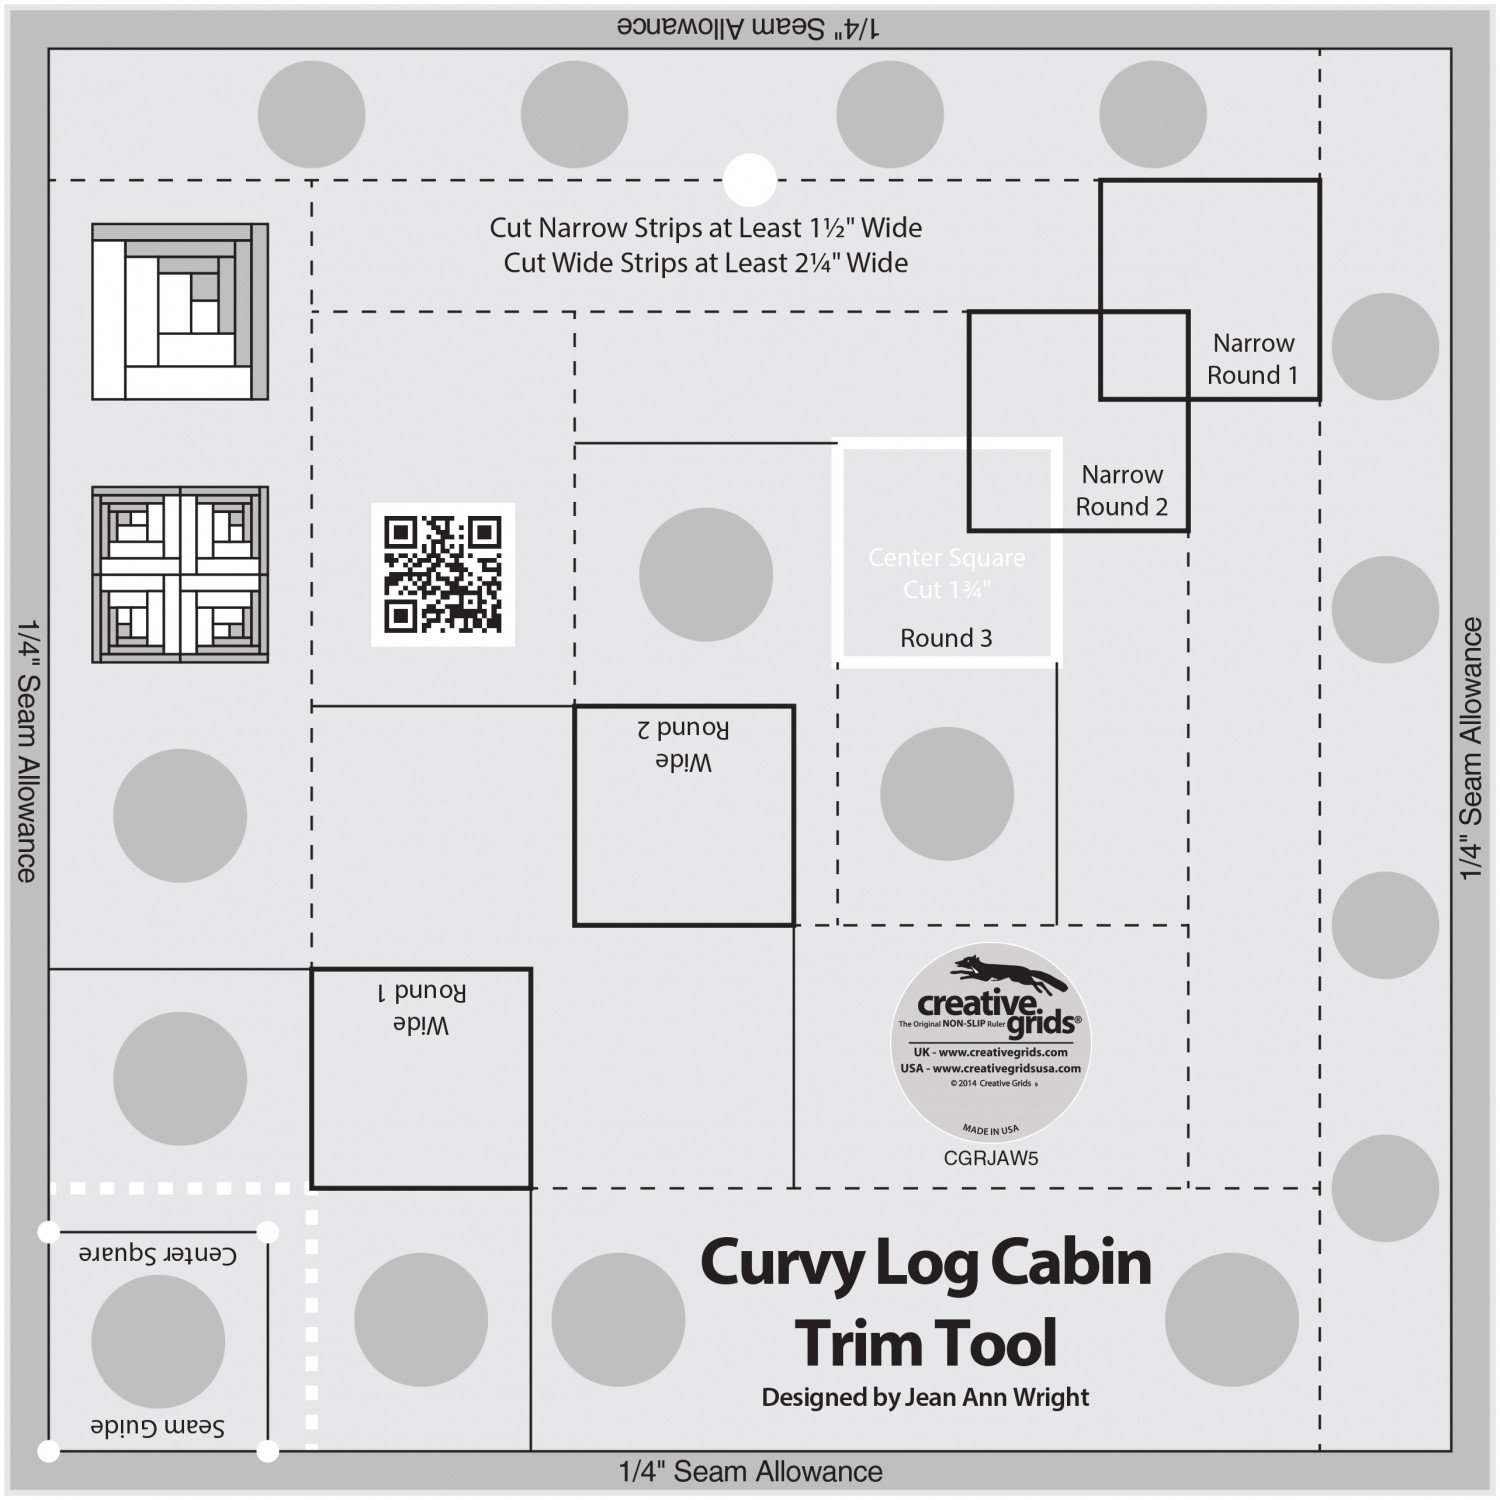 Bundle of Creative Grids Curvy Log Cabin Trim Tool 8in Finished Blocks and Cut Loose Press Hopscotch Curvy Log Cabin Quilt Pattern